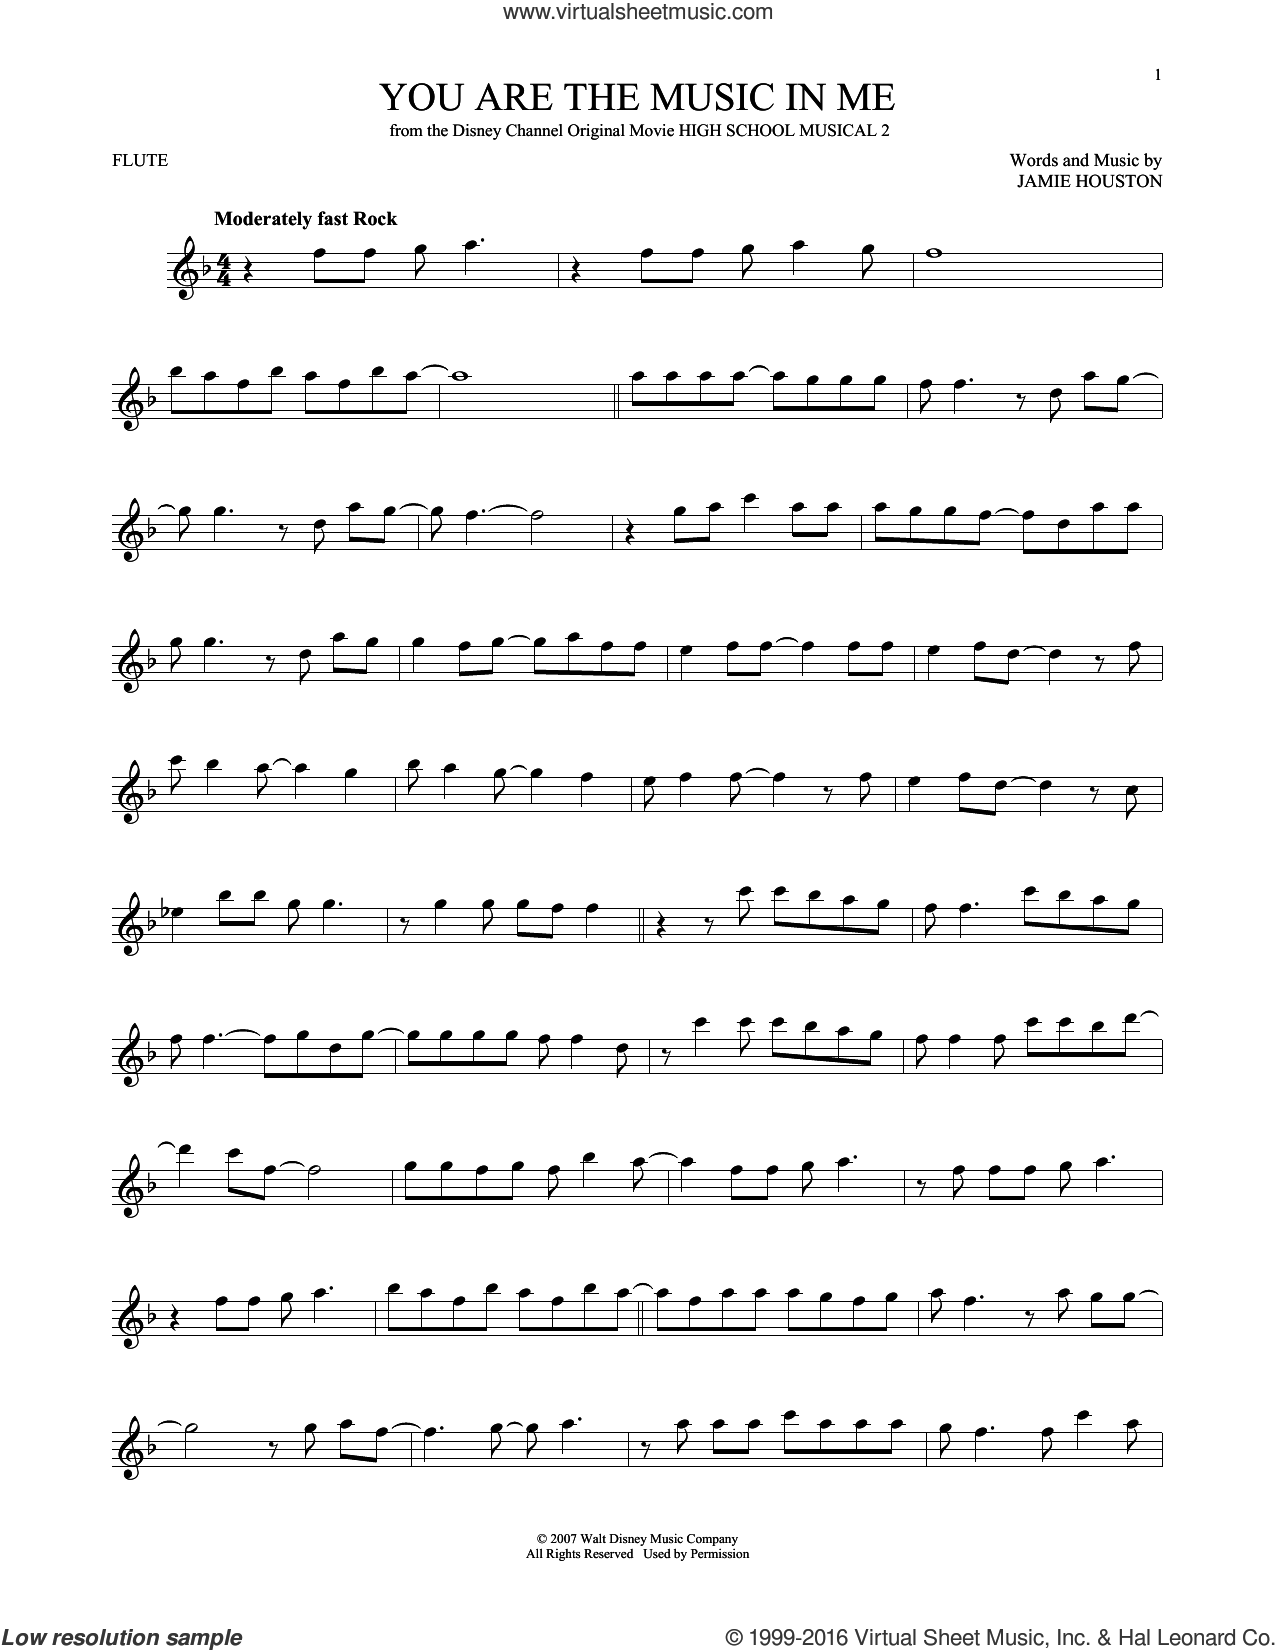 You Are The Music In Me sheet music for flute solo by Jamie Houston